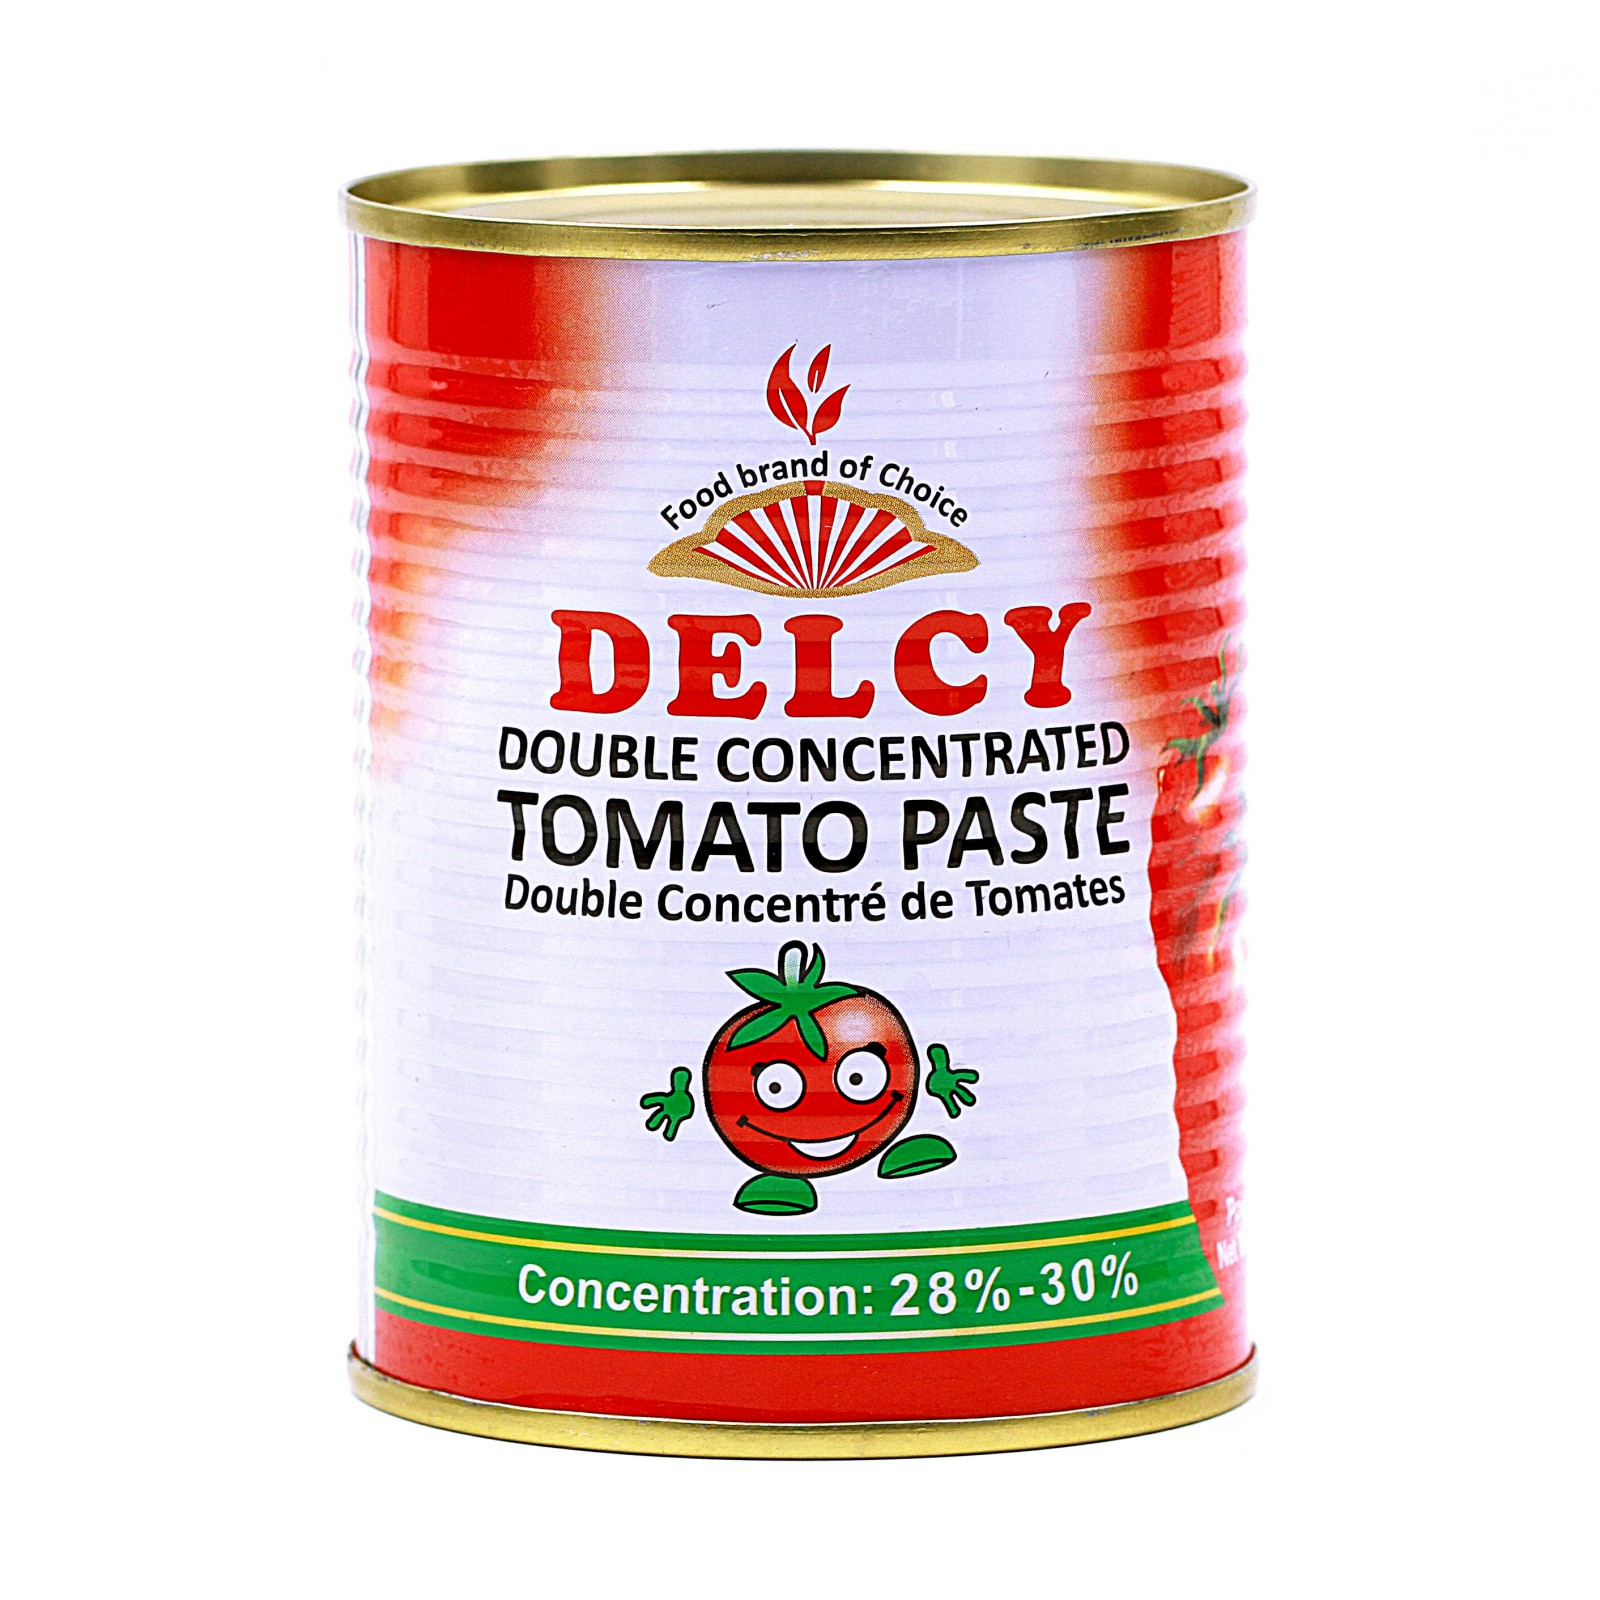 Canned Tomato Paste easy open